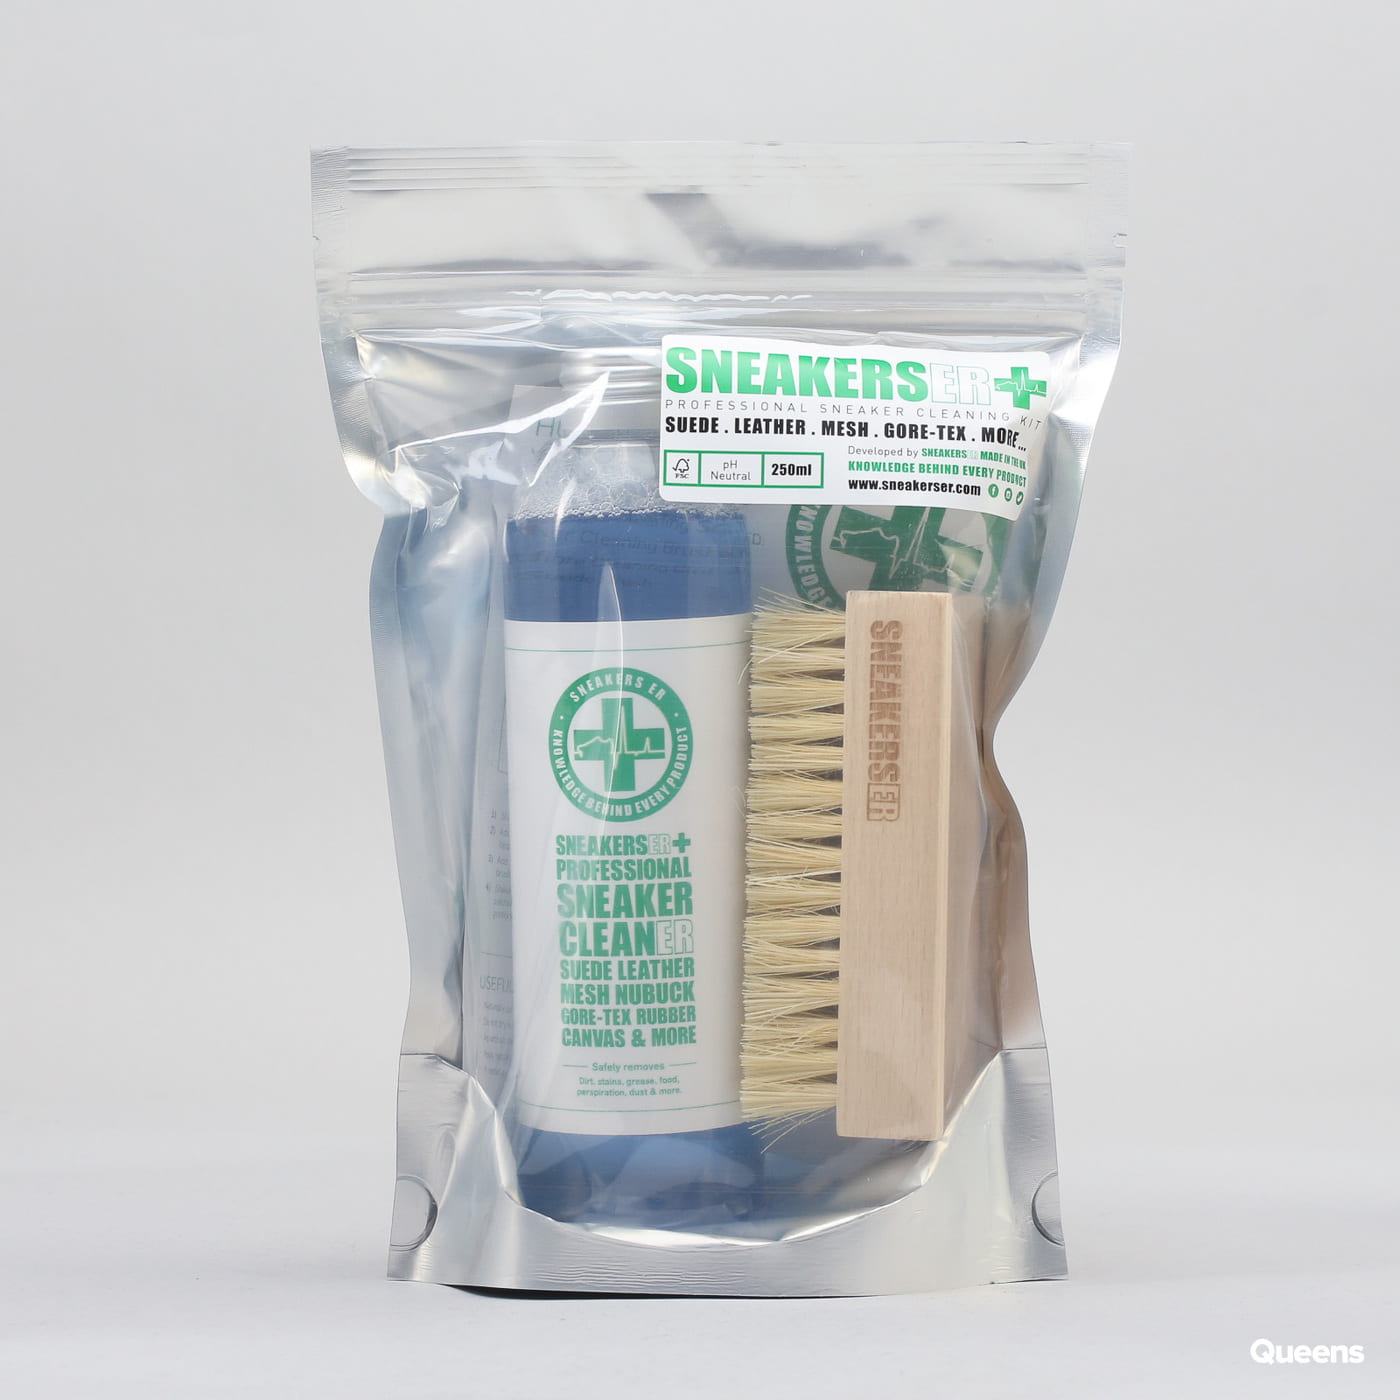 SNEAKERS ER Sneaker Cleaning Solution & Brush Kit